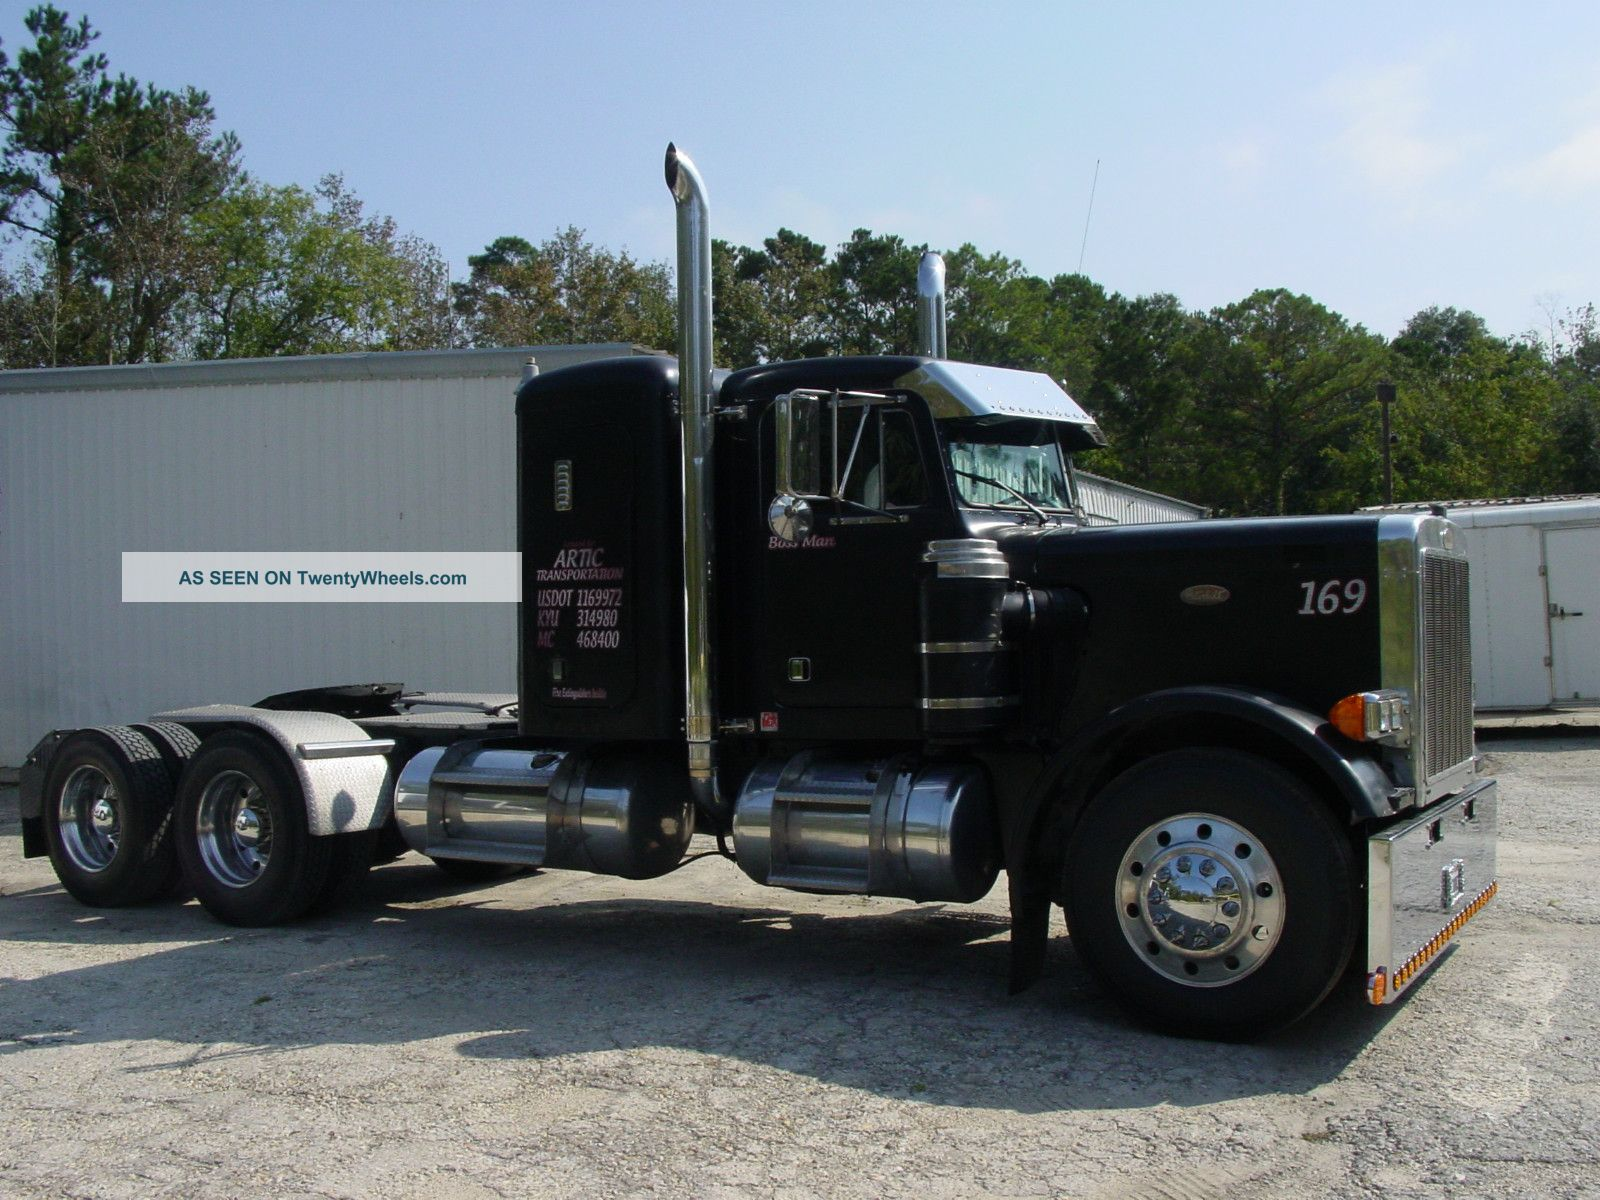 1975 Peterbilt 359 Sleeper Semi Trucks photo 2